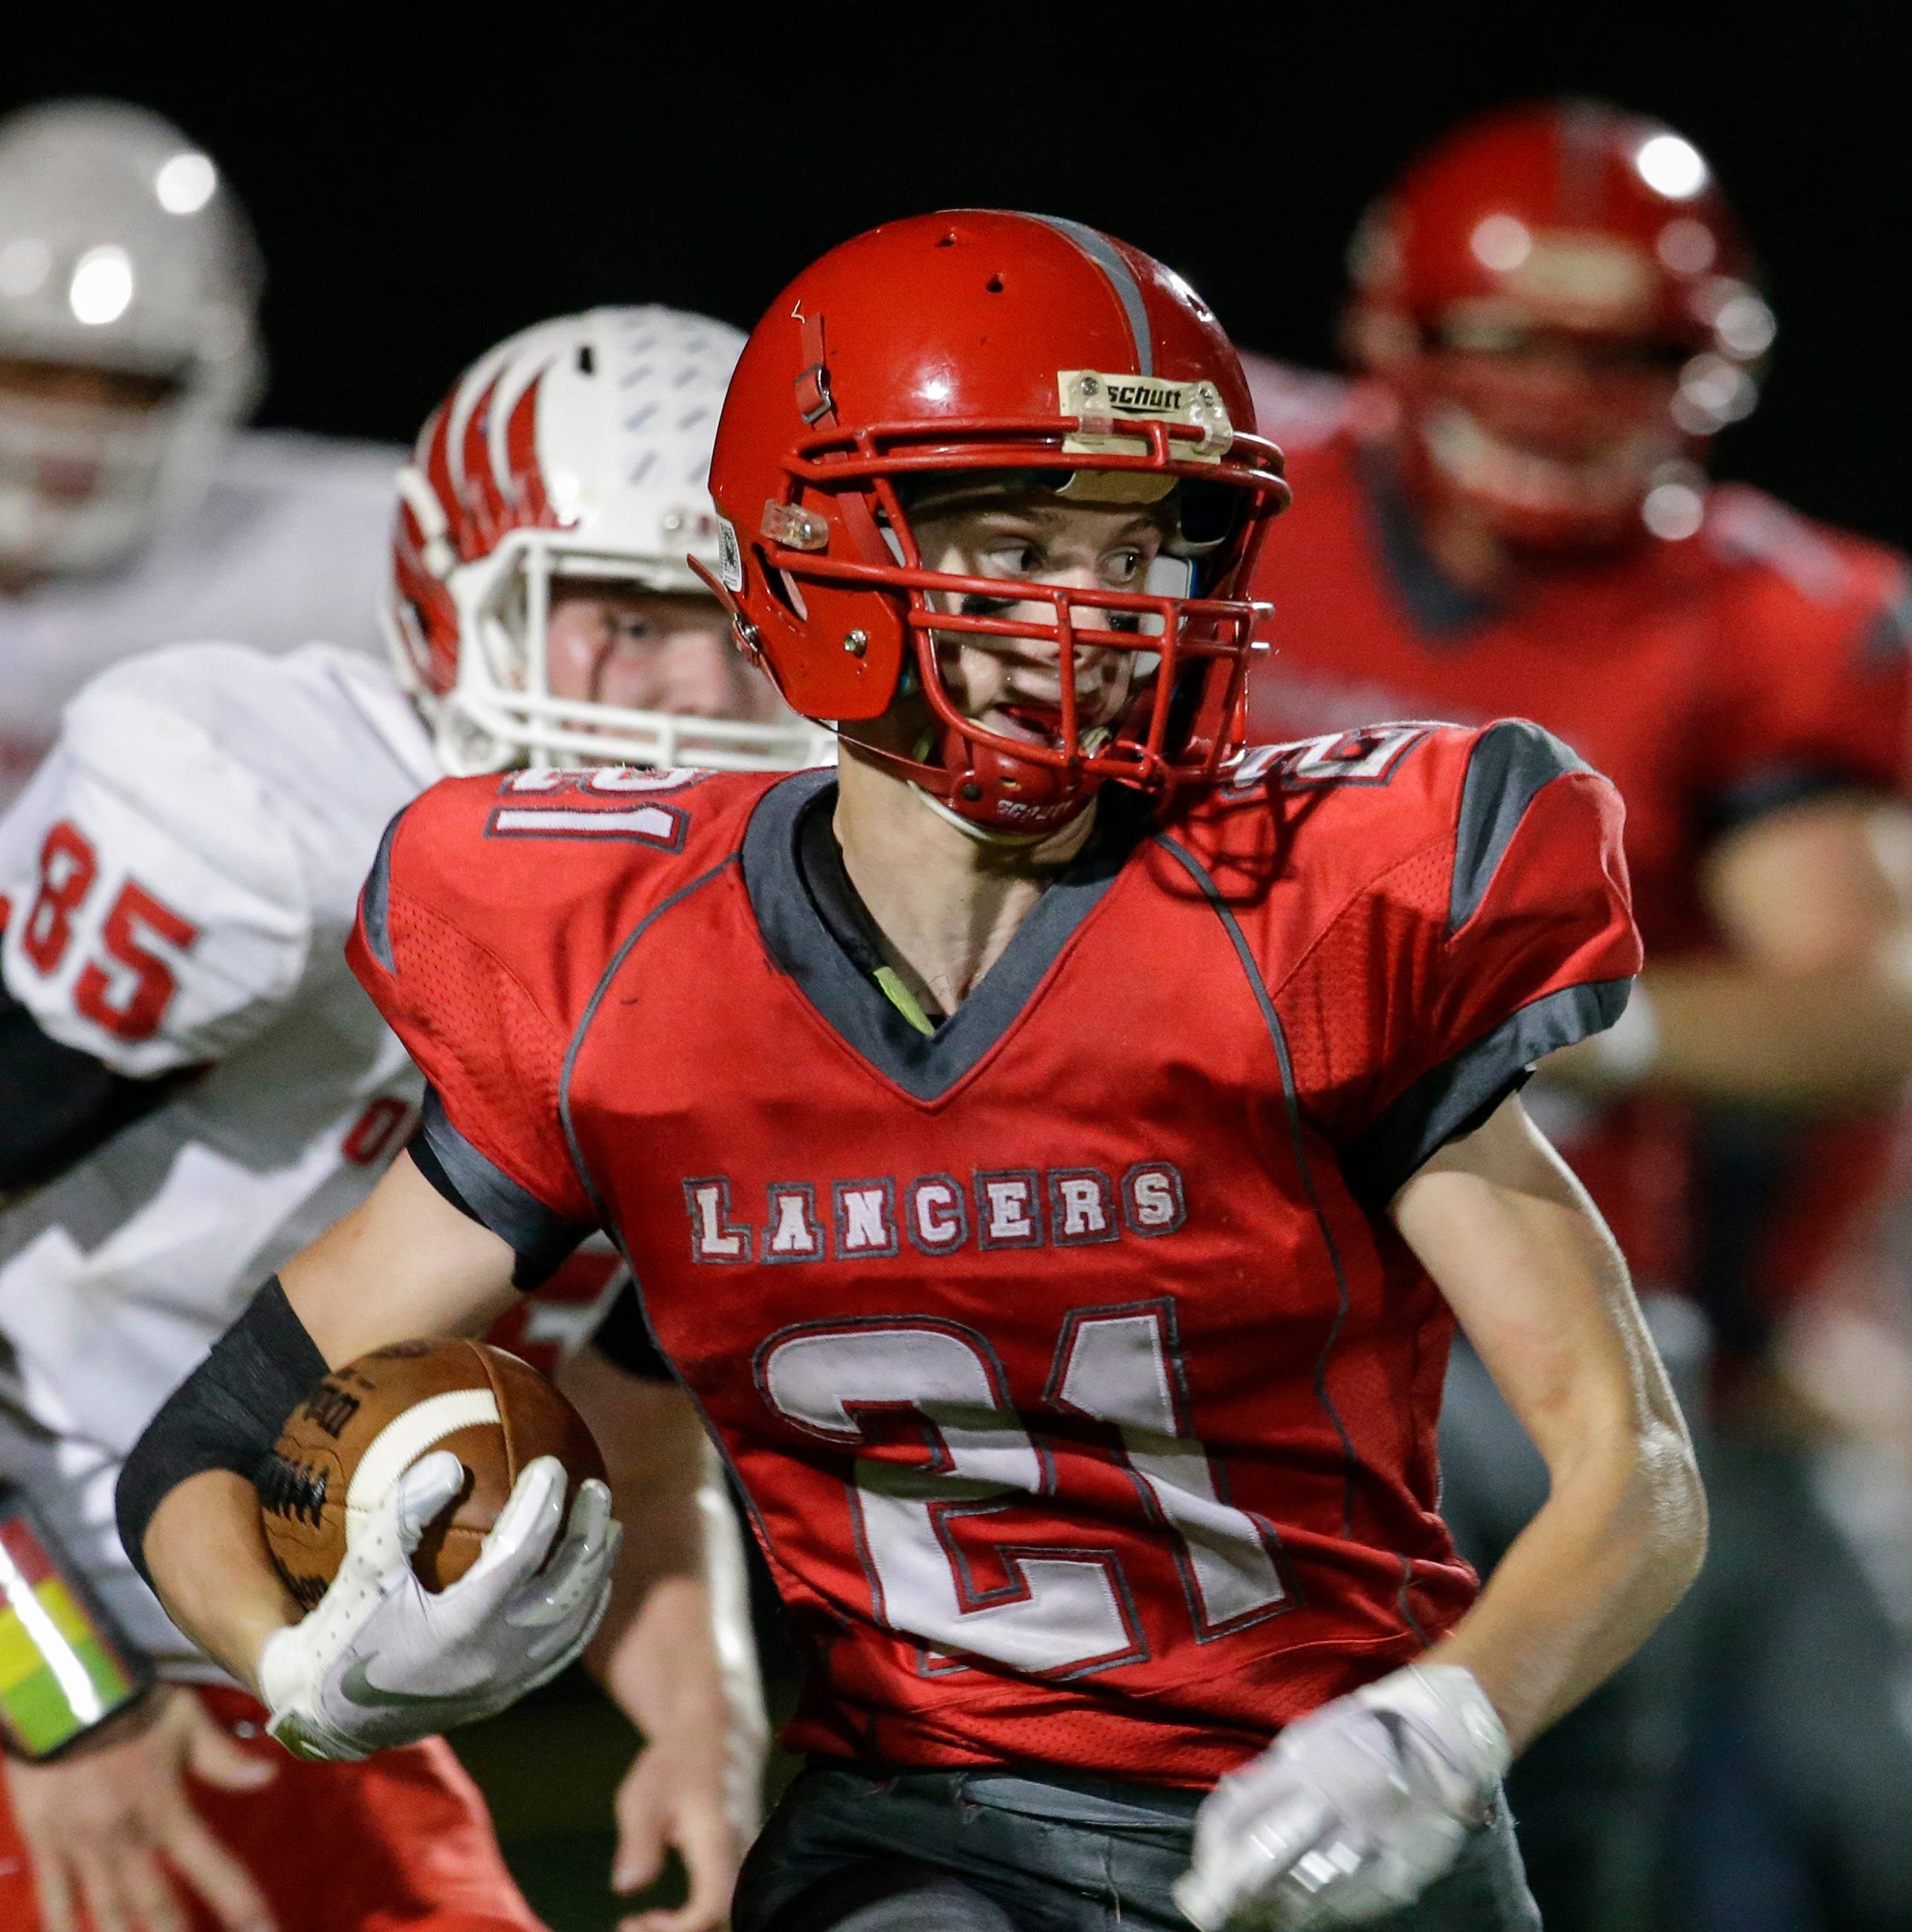 Top performers: Manitowoc Lutheran's Lischka tops list for second straight week